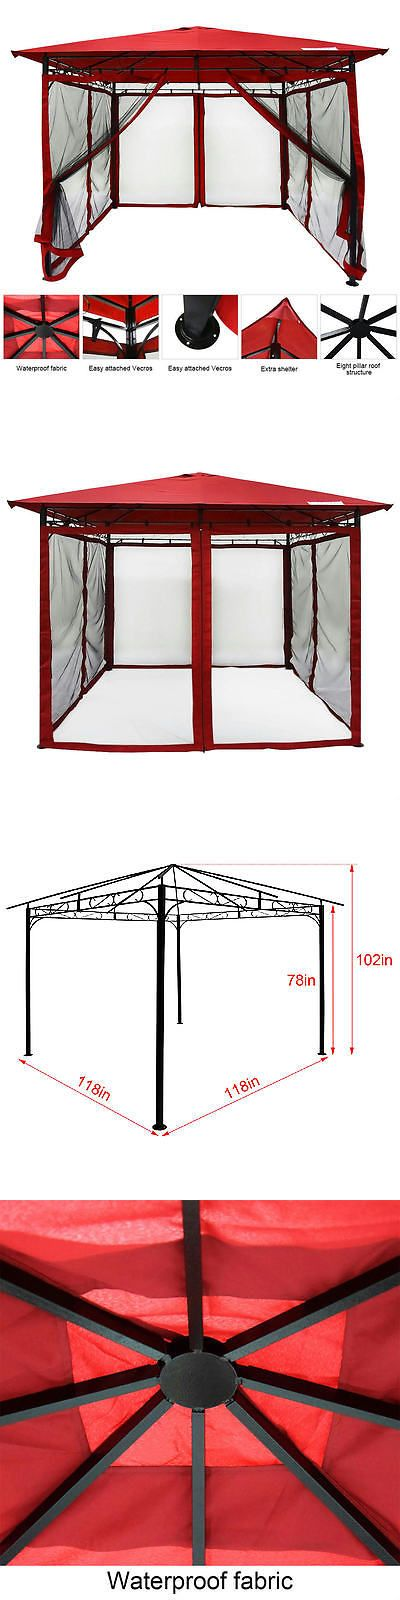 Gazebos 180995: Quictent Metal Hardtop Gazebo 10 X 10Ft Waterproof Backyard Shelter W Mesh Red -> BUY IT NOW ONLY: $209.99 on eBay!